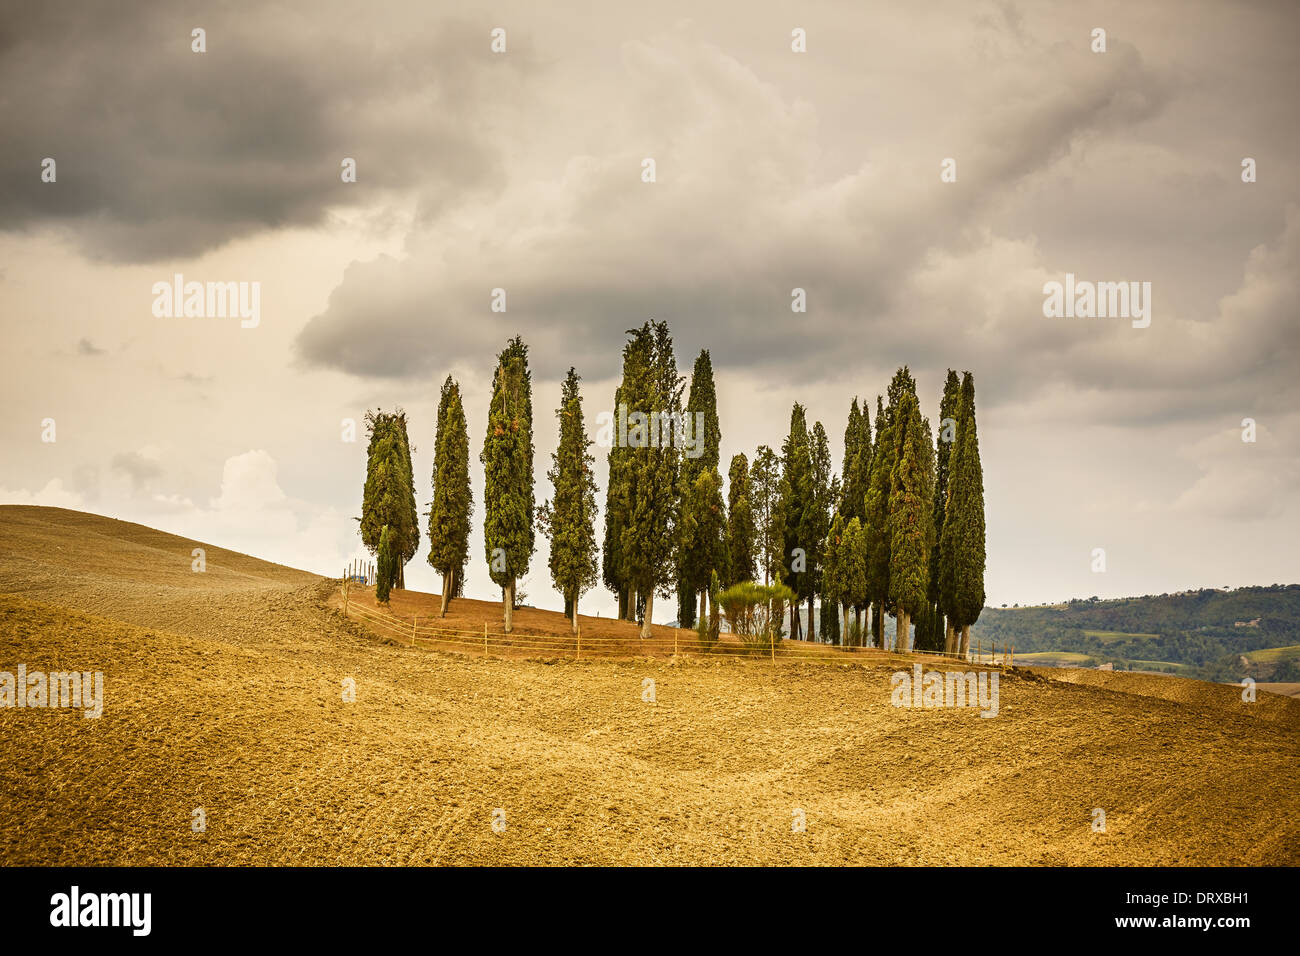 Paysage de Toscane Photo Stock